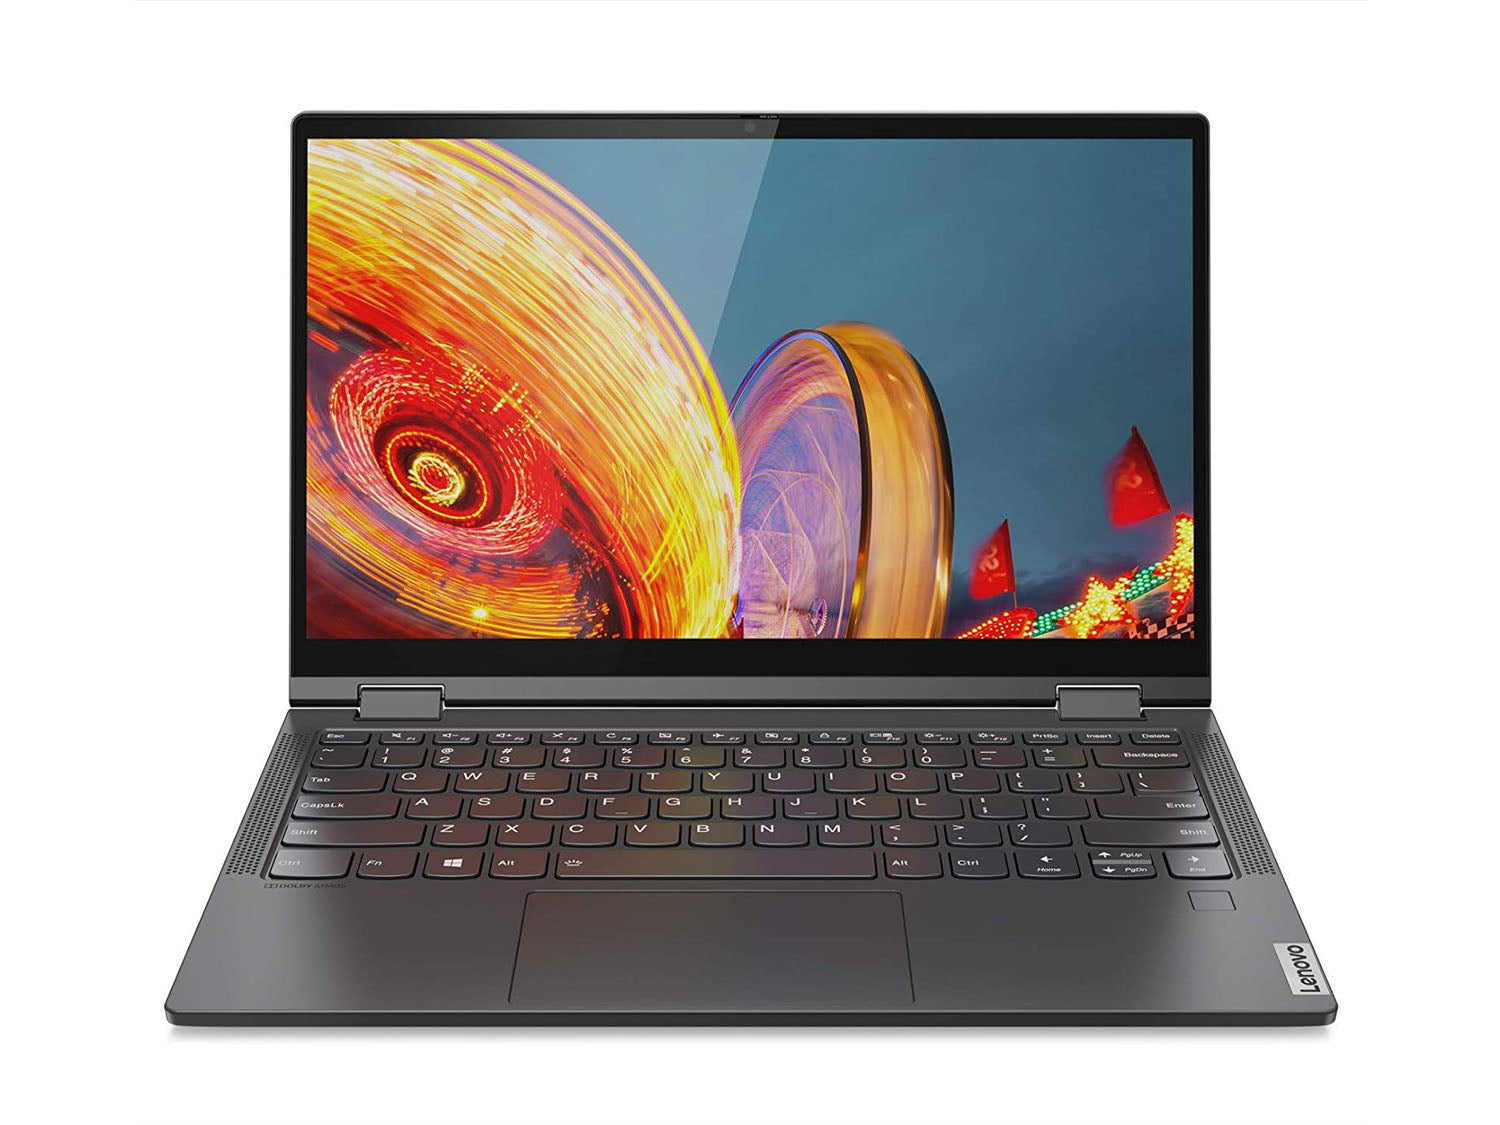 Lenovo ThinkPad X1 Yoga (i5 6th Generation)